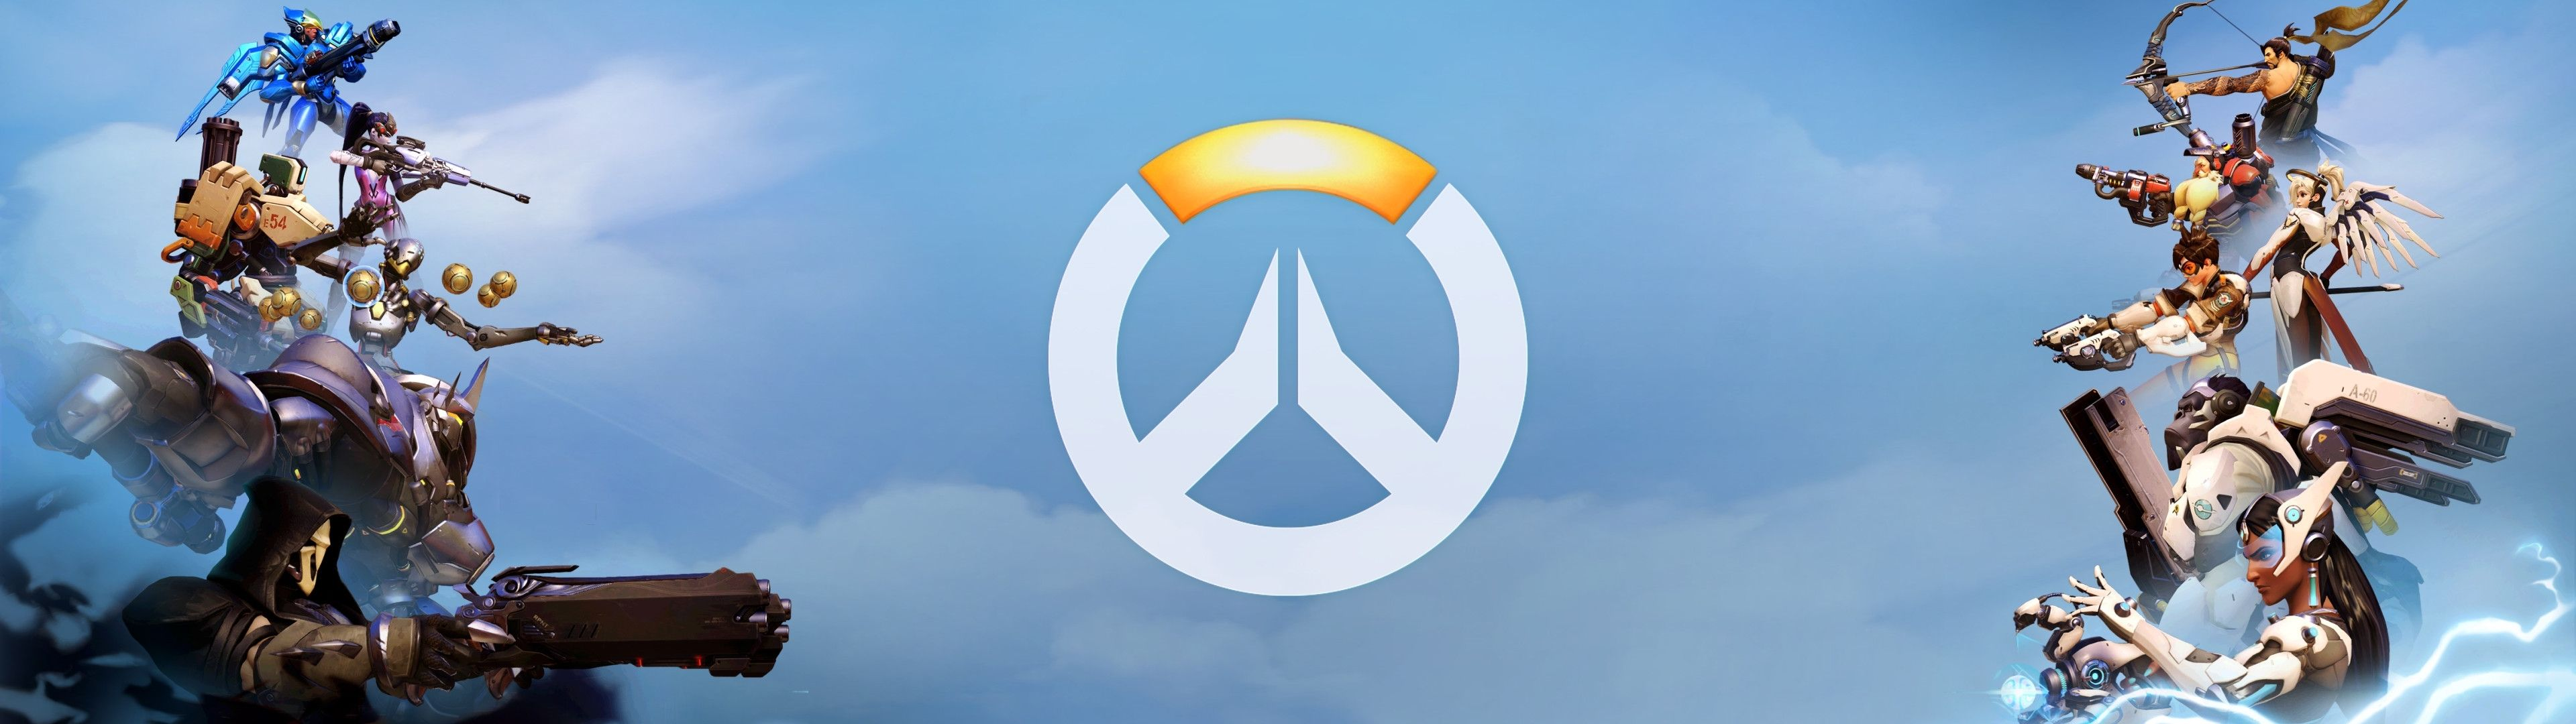 10 New Dual Monitor Wallpaper Overwatch Full Hd 1920 1080 For Pc